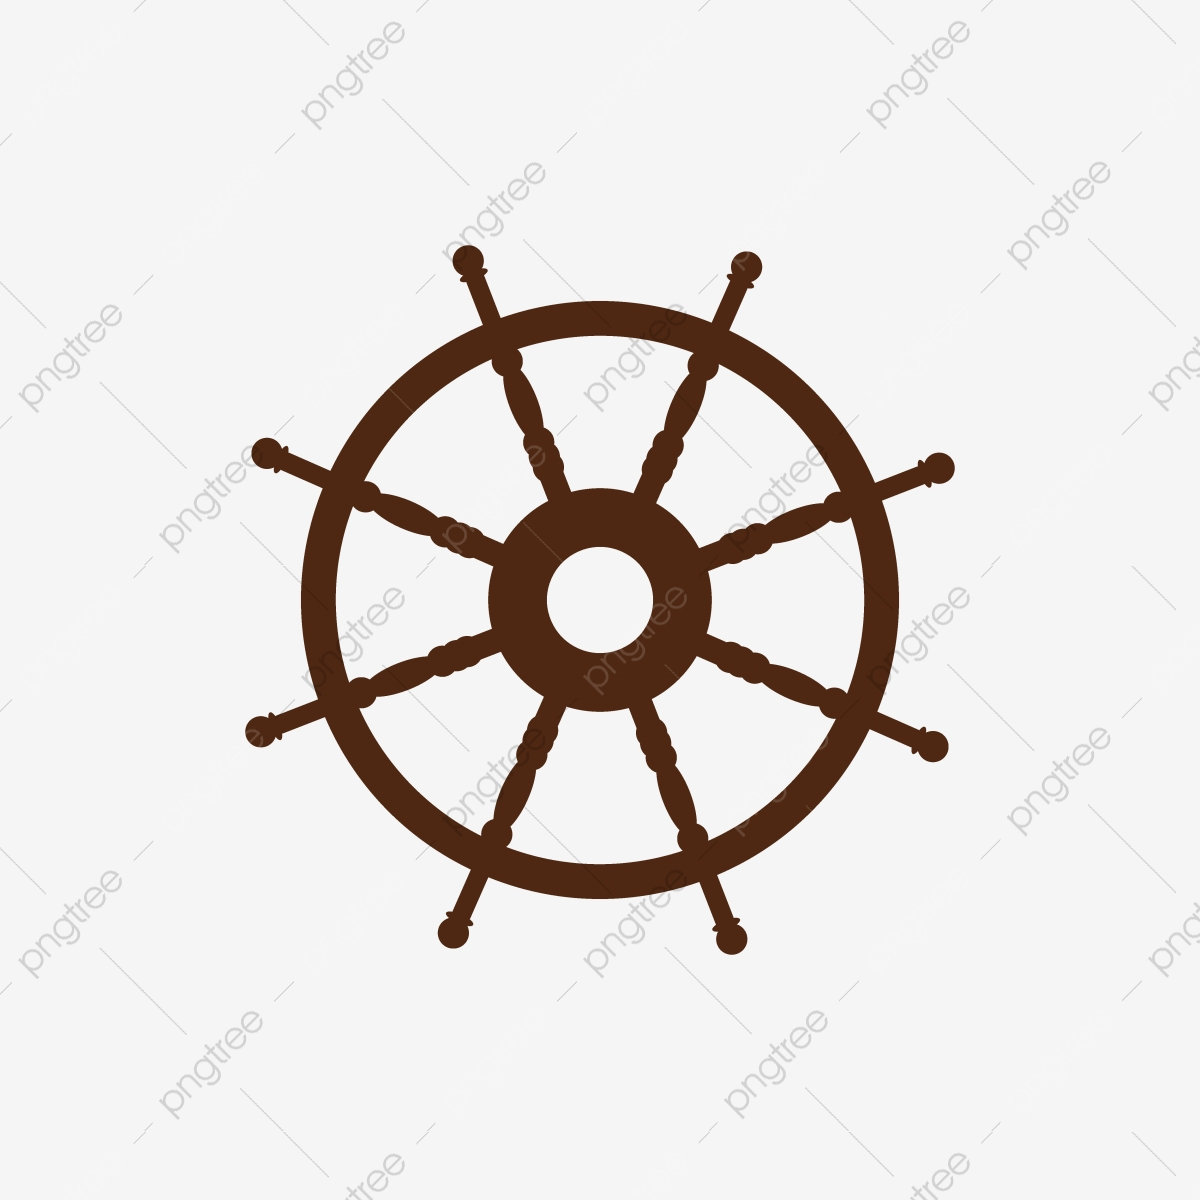 Ship Steering Wheel Logo Design Vector Icon Vector Logo Png And Vector With Transparent Background For Free Download